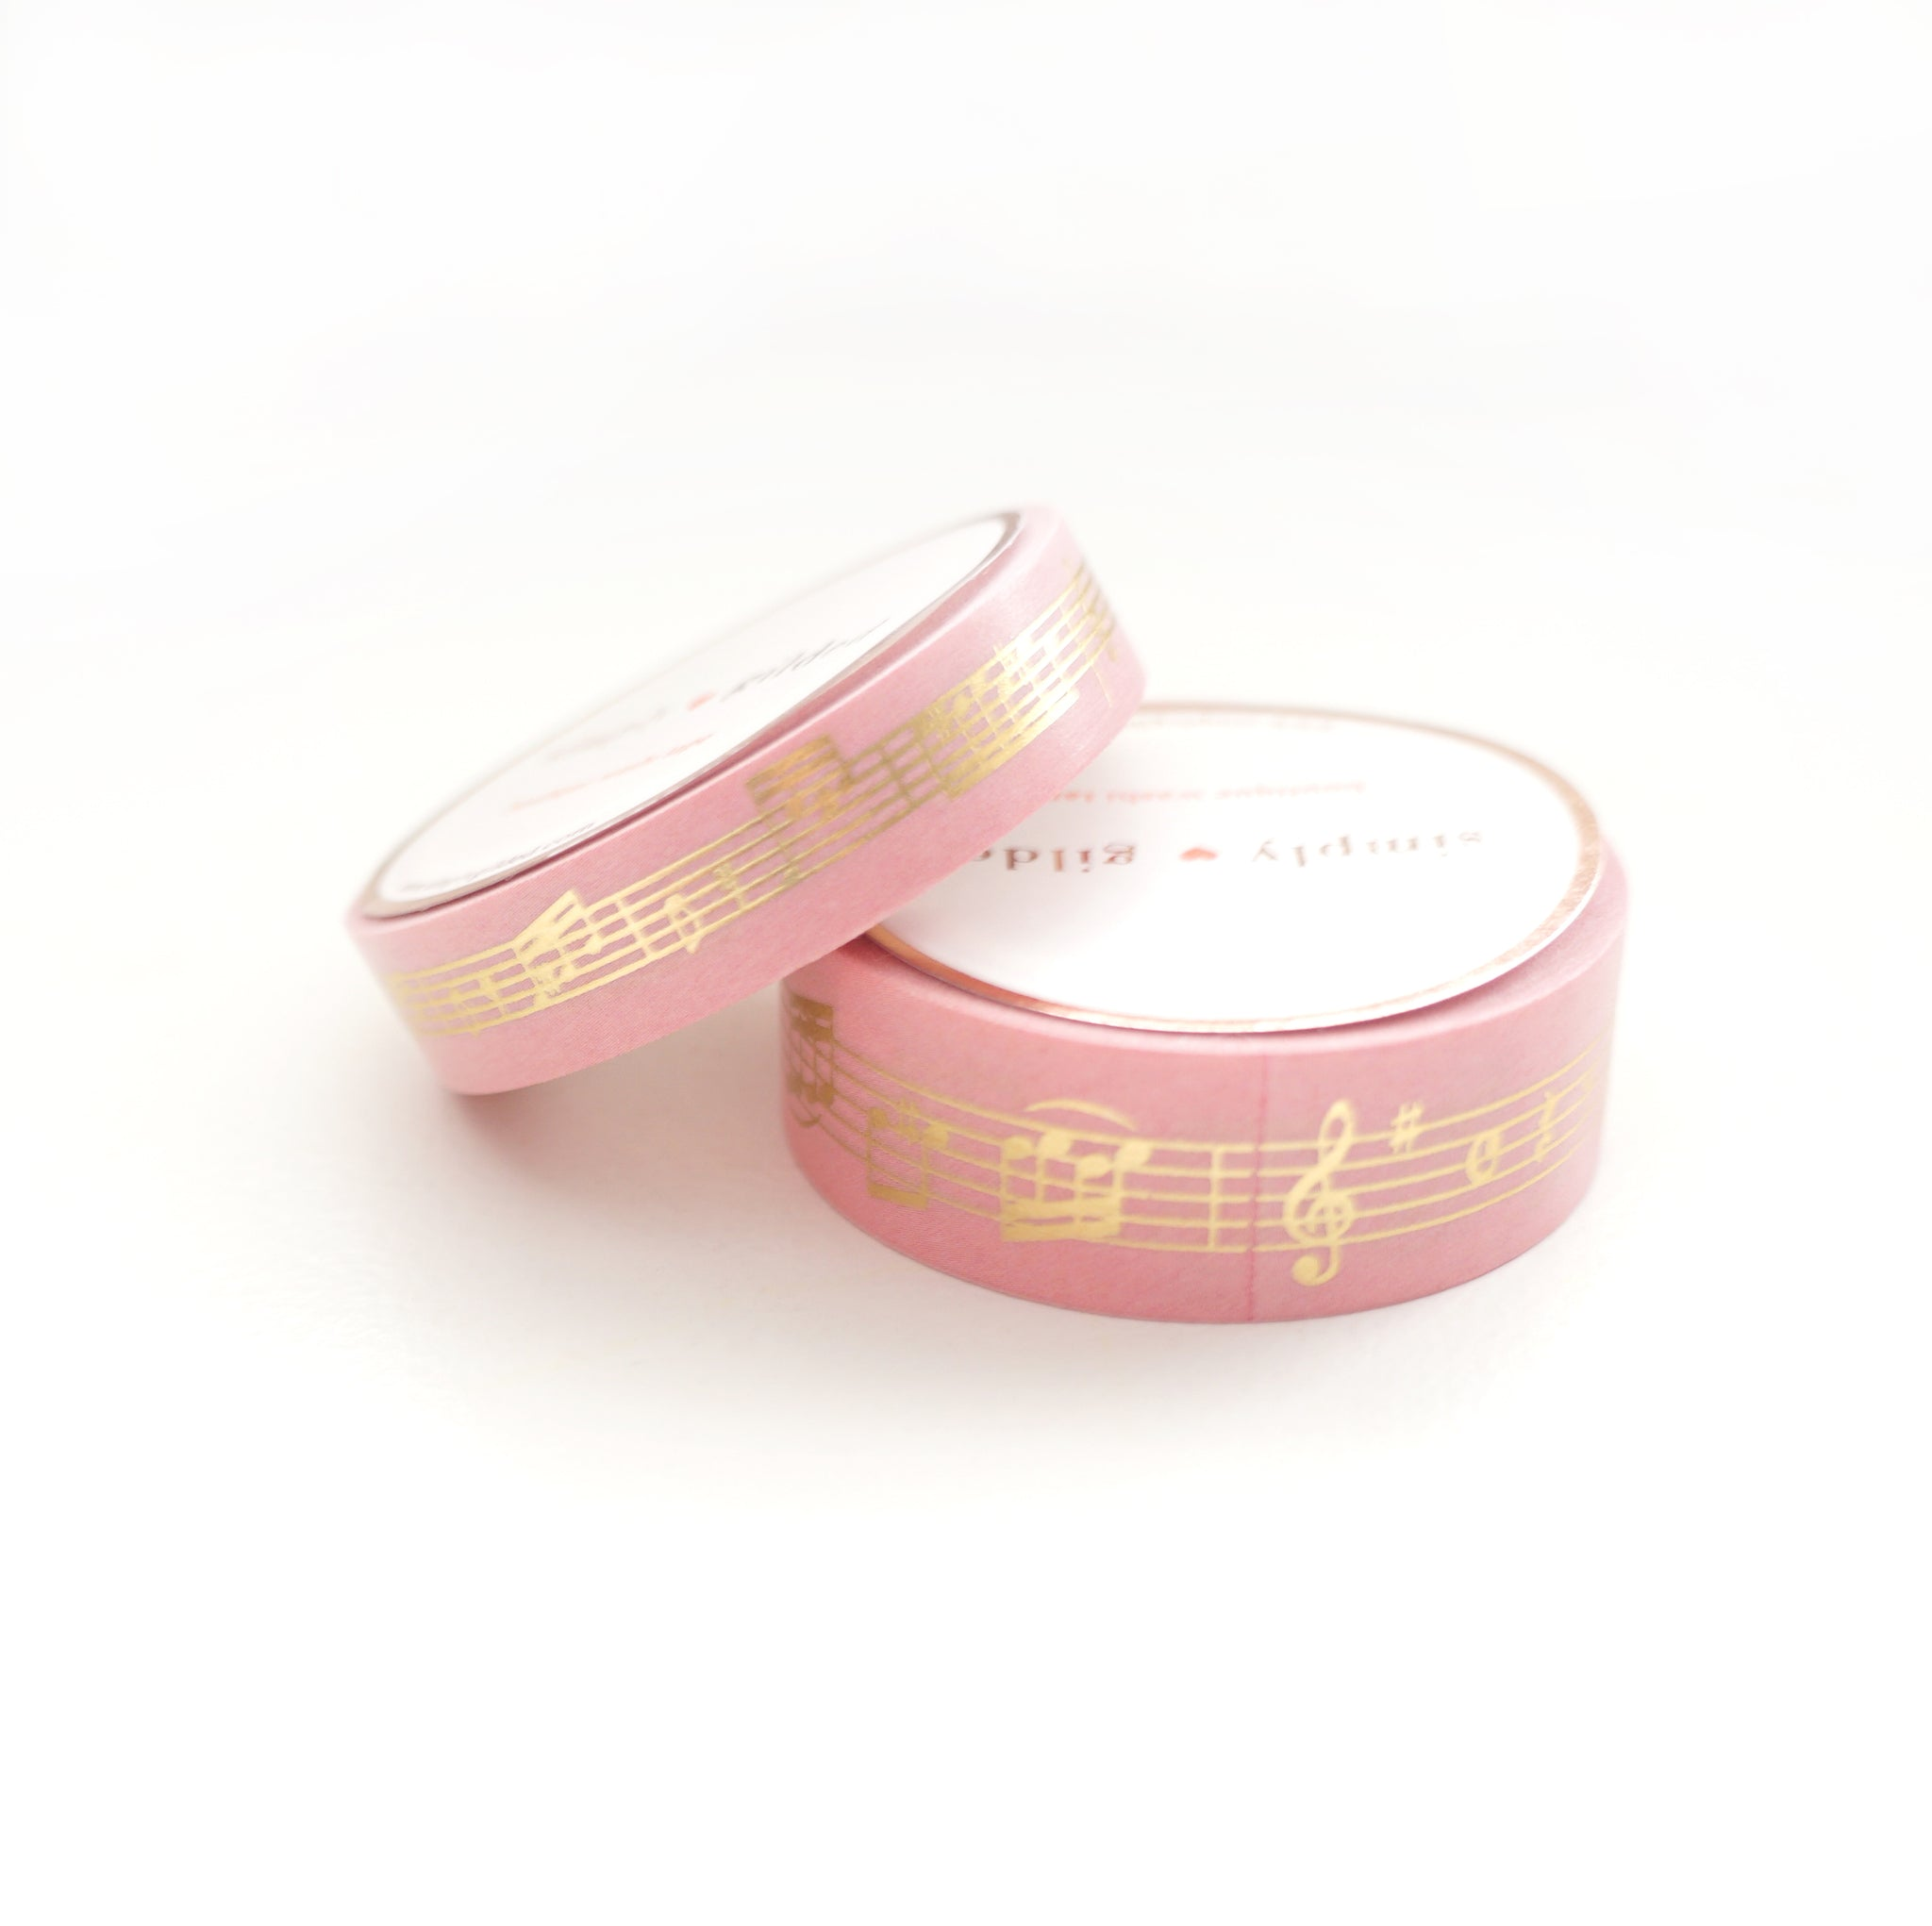 WASHI 15/10mm set - ROSY PINK Musical Notes + Light Gold